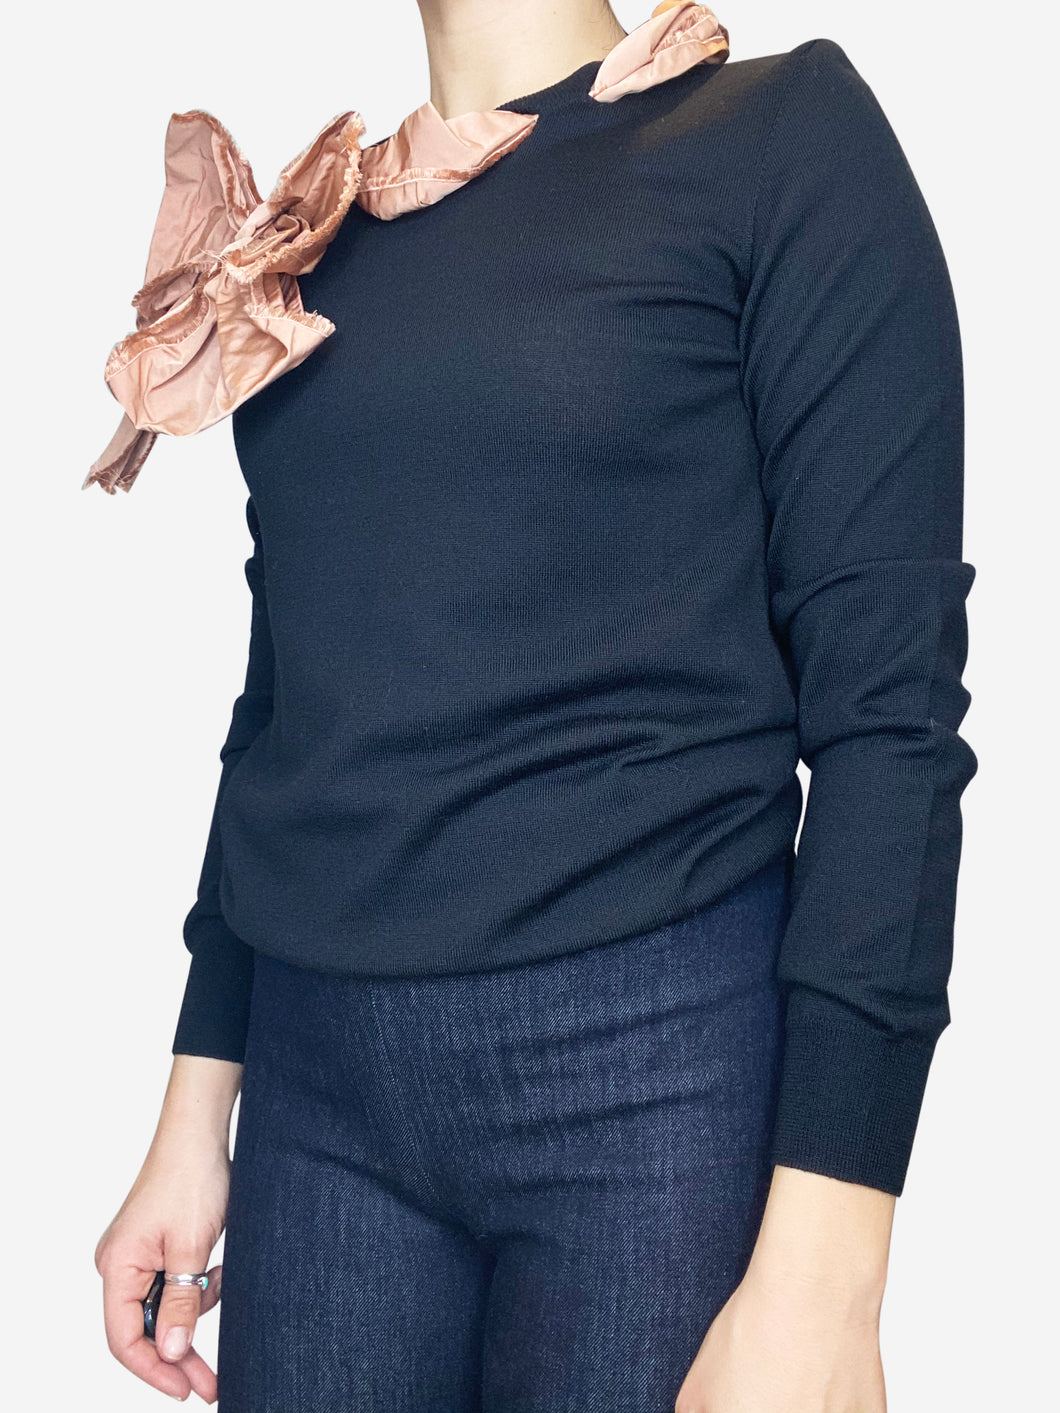 Black long sleeve sweater with frayed ribbon bow neckline- size M